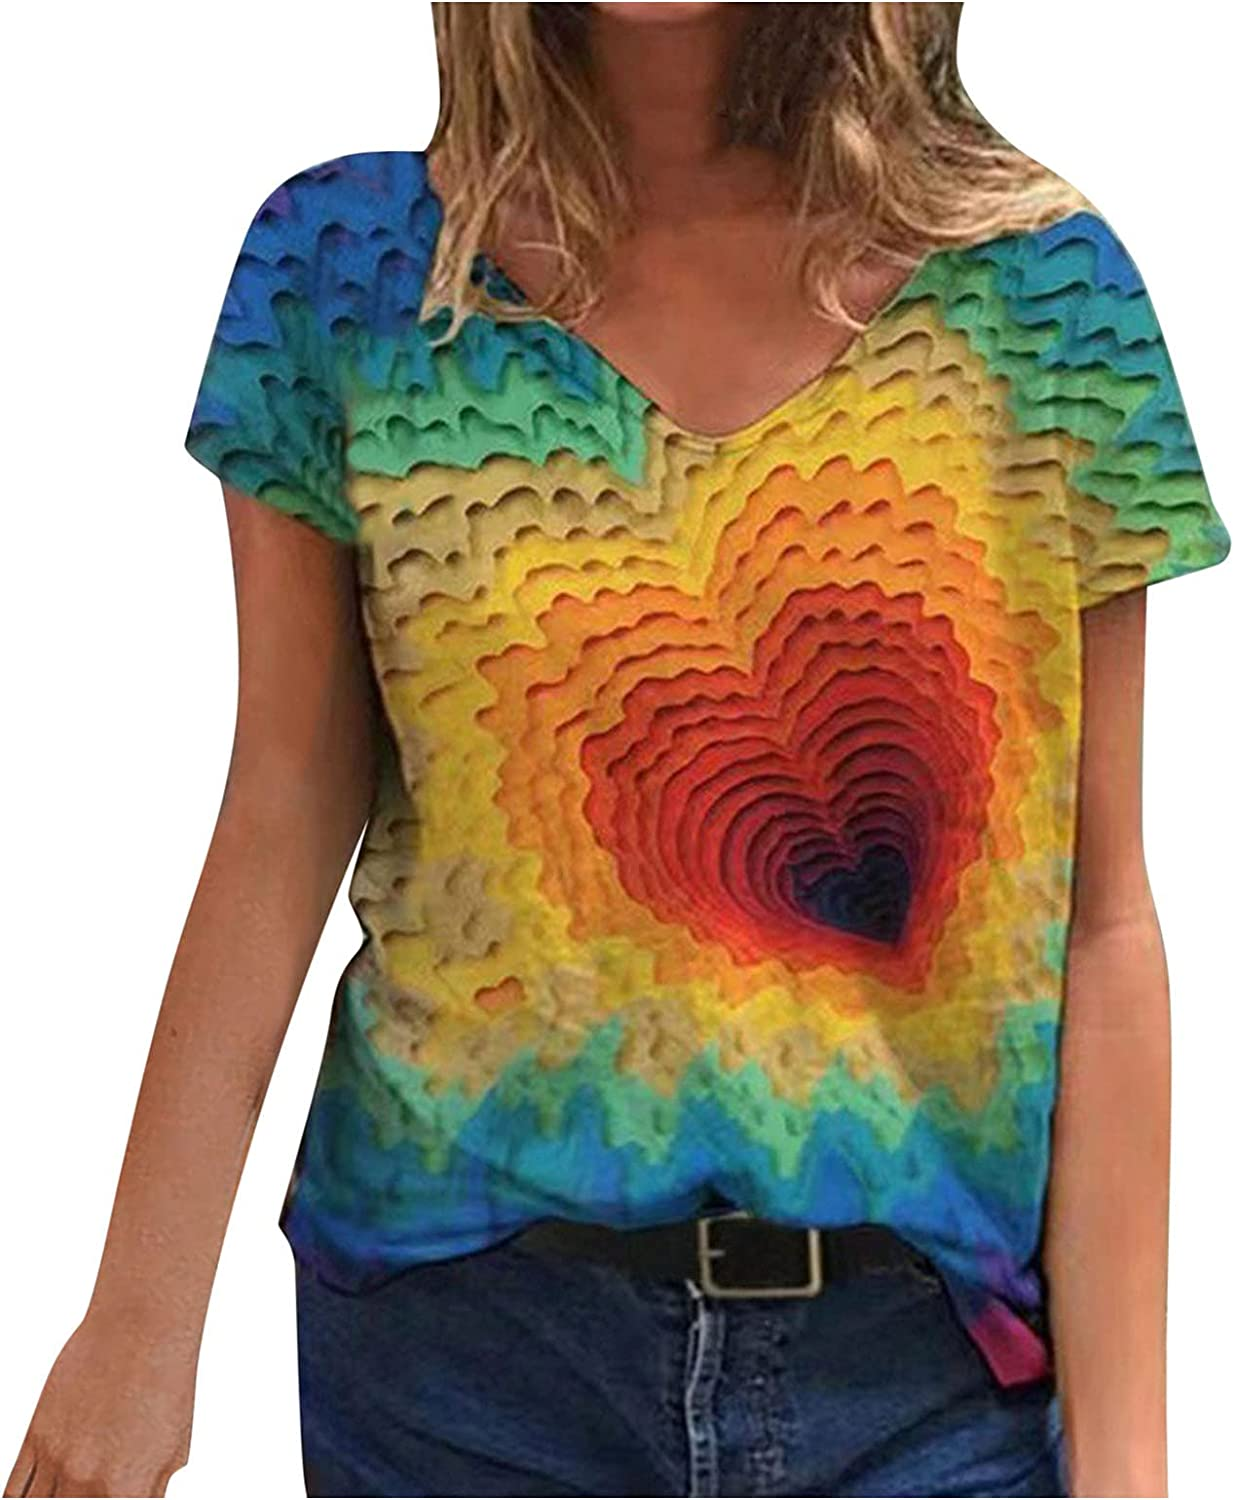 Forwelly Women's Summer Short Sleeve T Shirt Casual Loose V Neck Tee Shirt Blouse Fashion Tie Dye Print Tunic Top